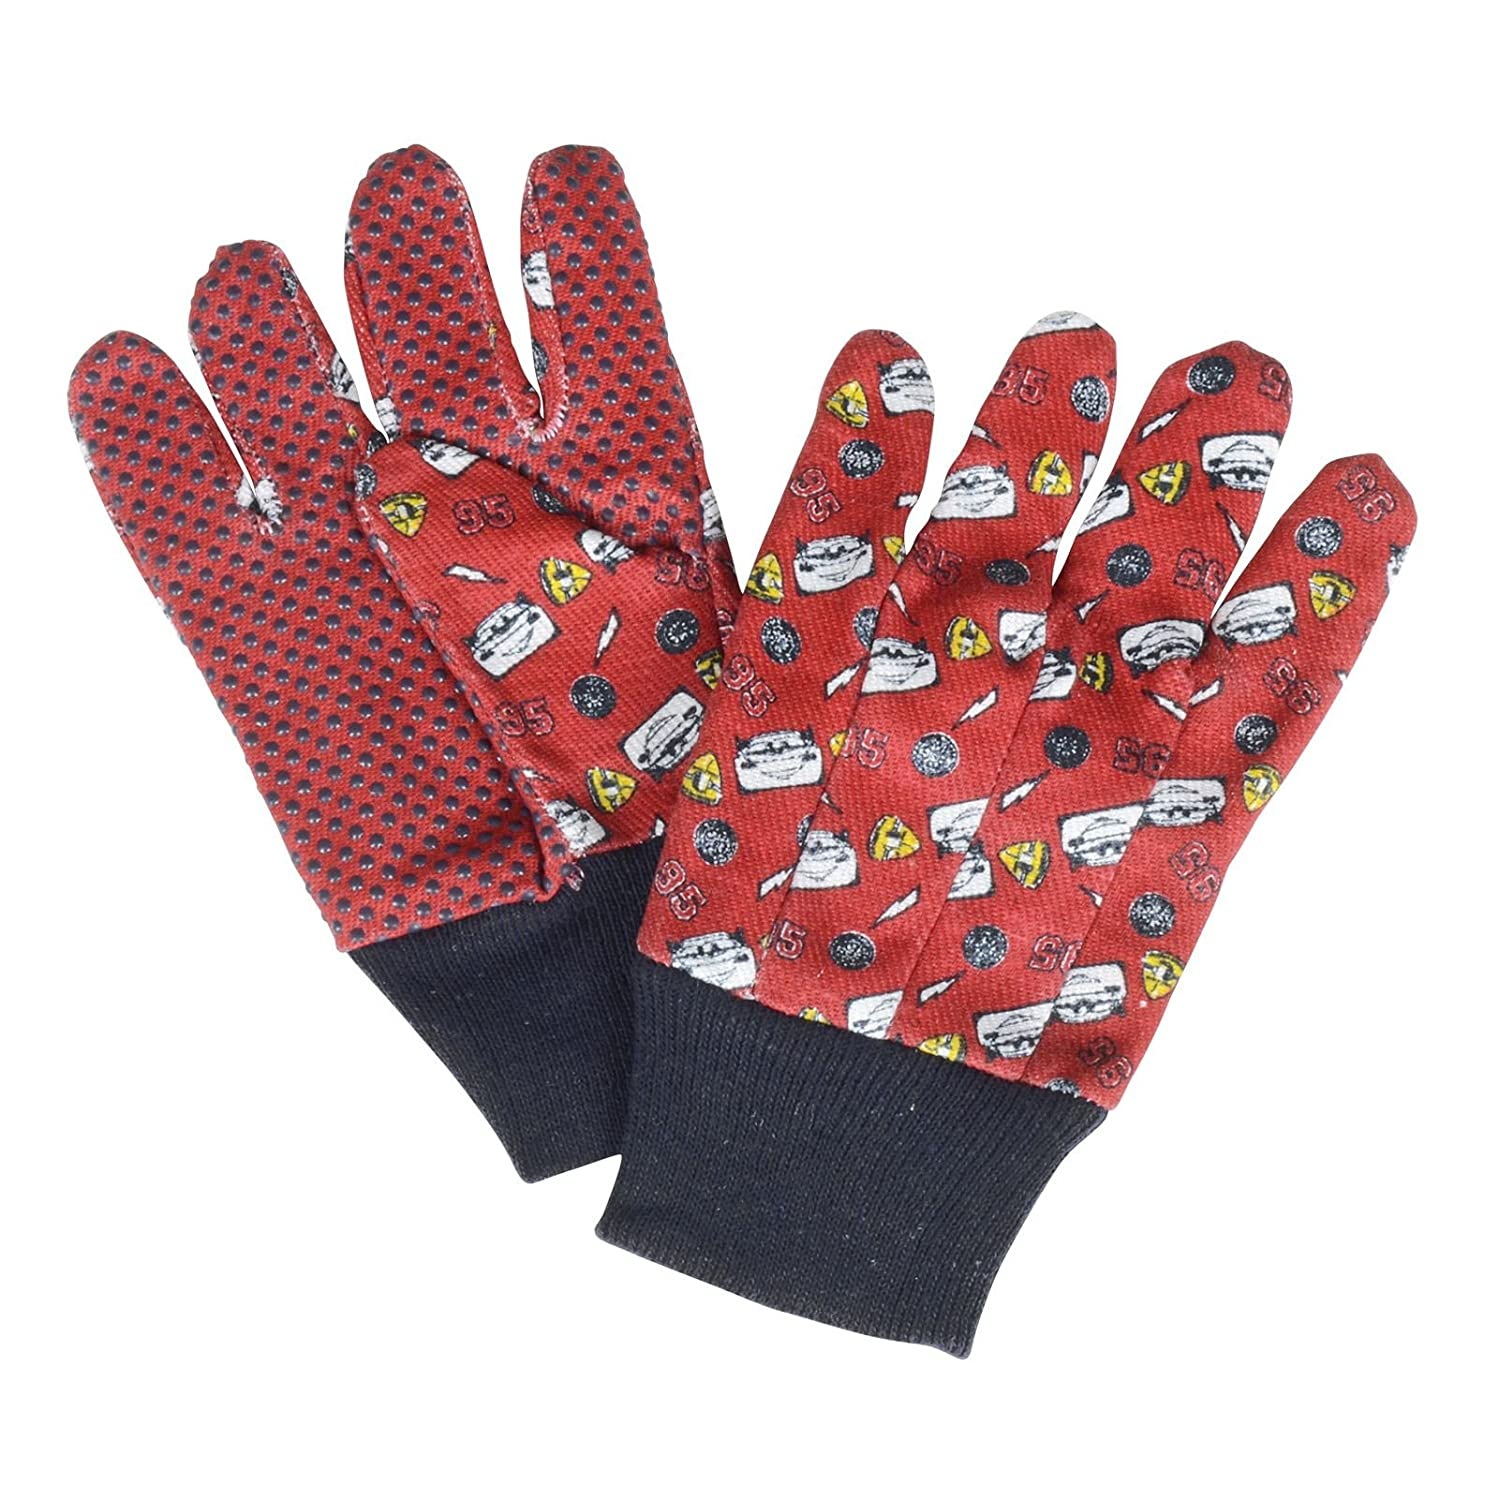 Global4Kids Kids Disney Pixar Cars Gardening Gloves Red Black Cotton Easy Grip Stretch Wrist Childs One Size tuingereedschap